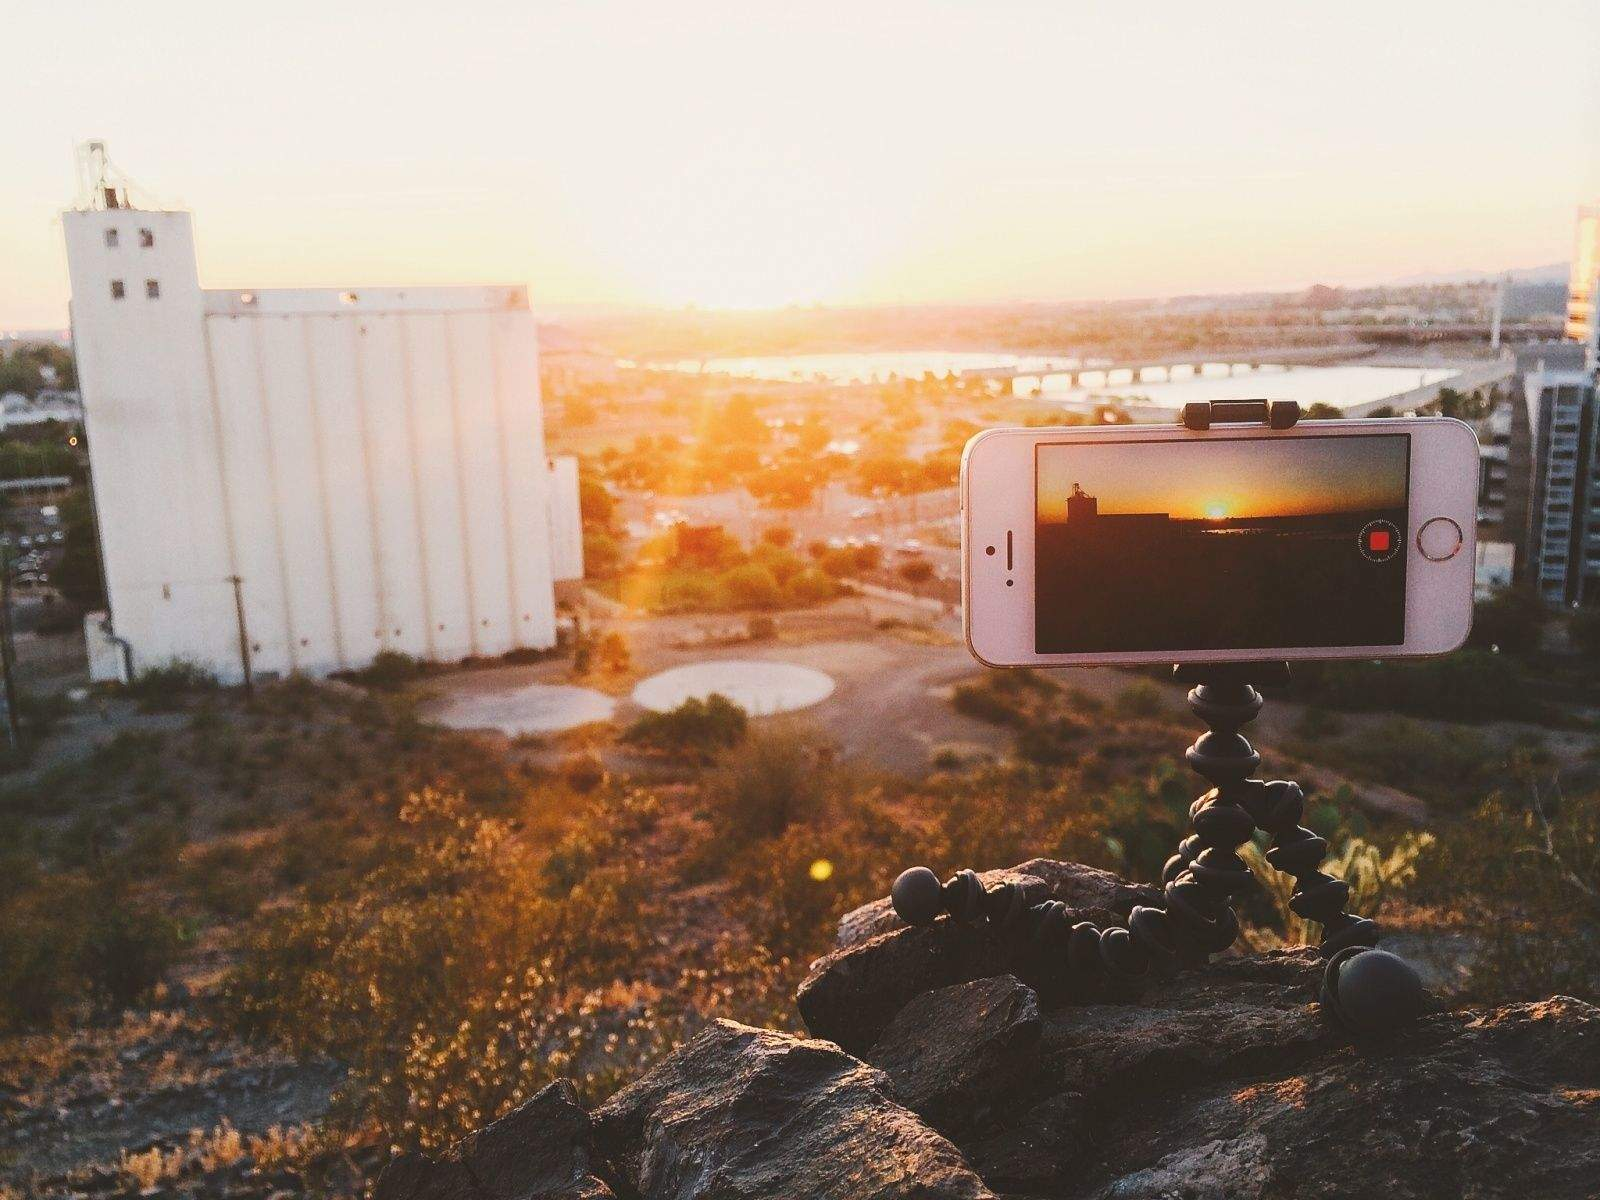 iOS 8 makes time lapse videography easier than XXXXX  photo: Buster Hein, Cult of Mac